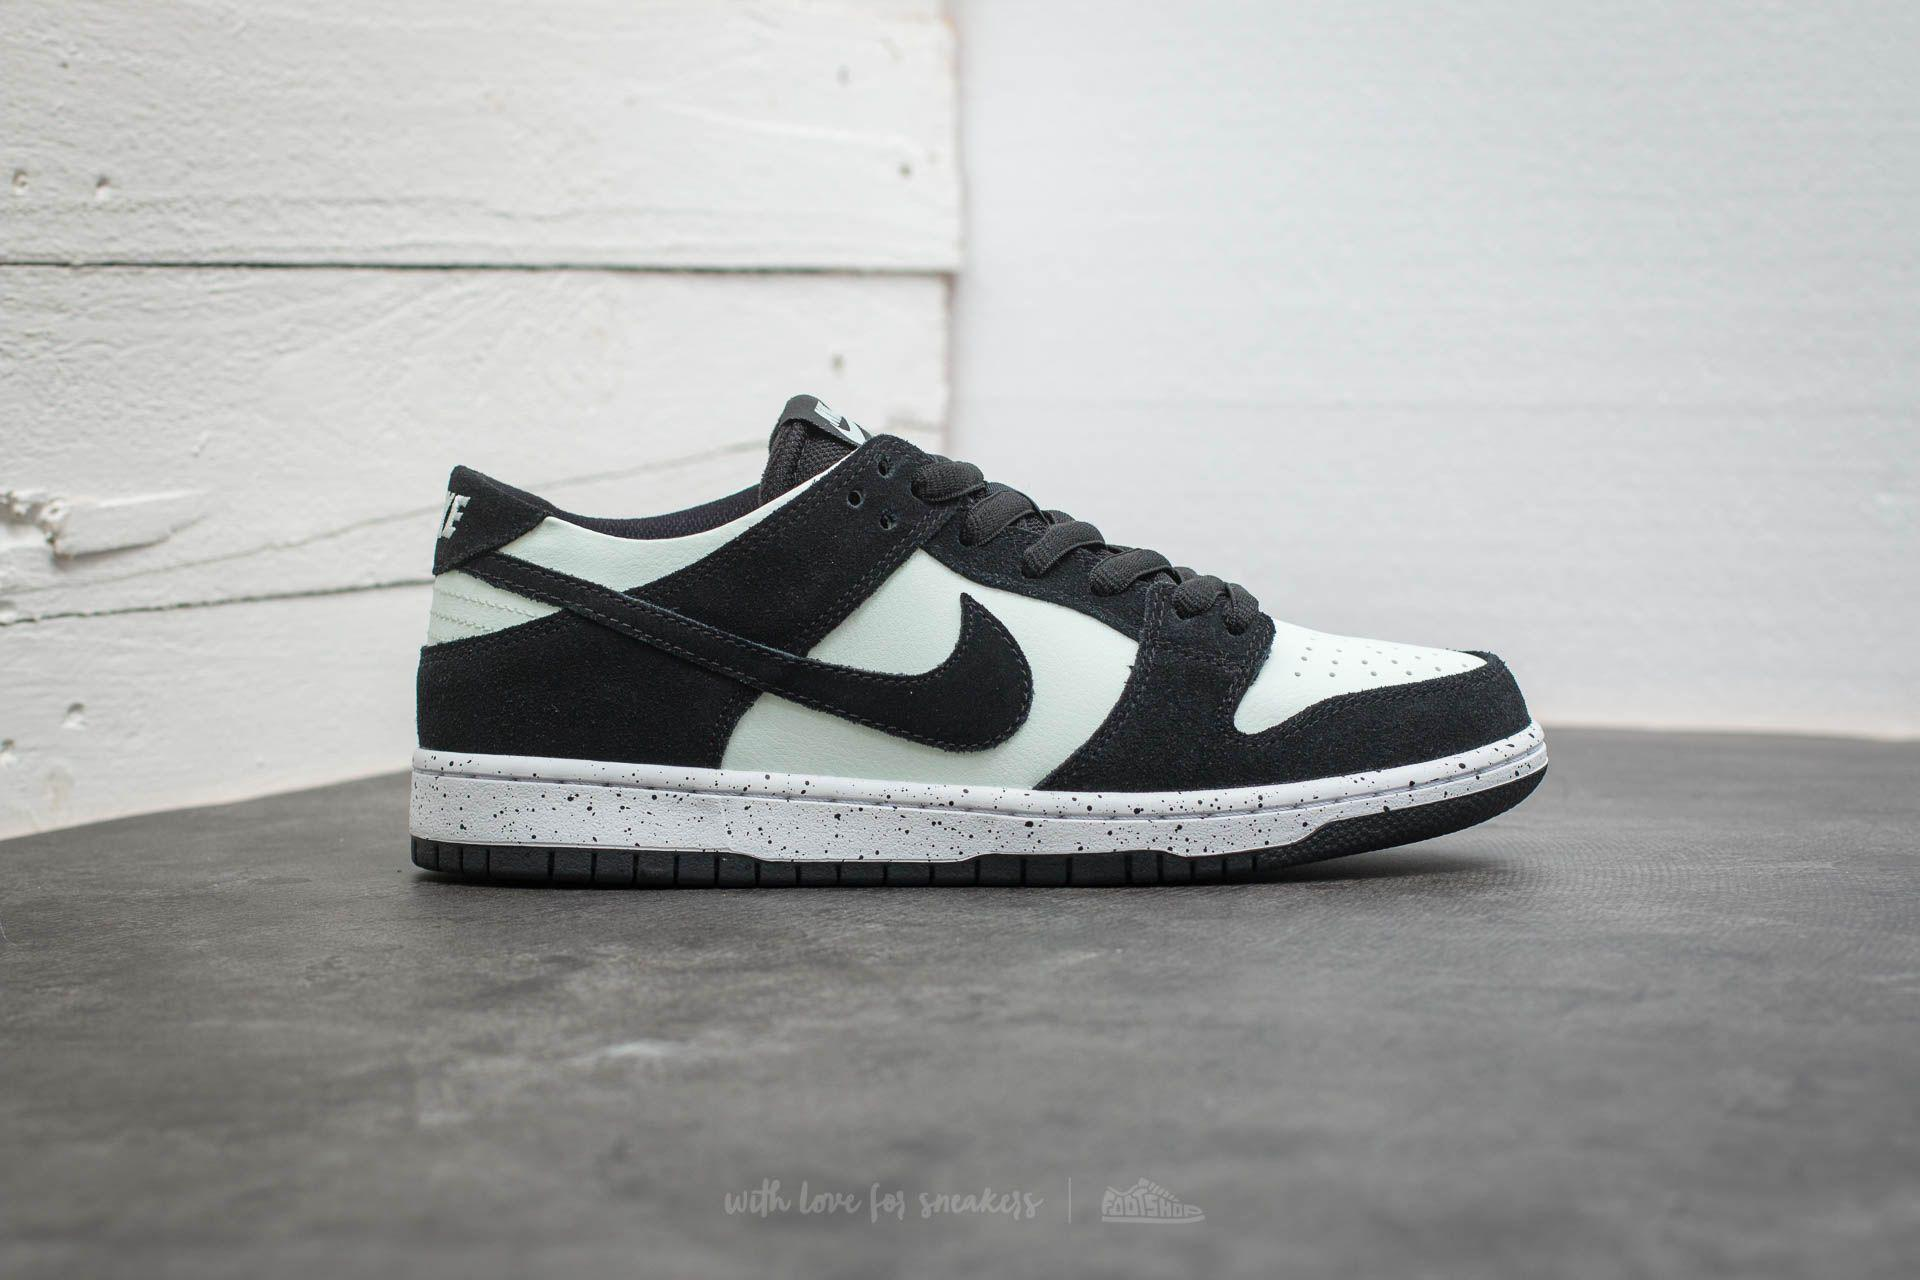 brand new 63e4d 4a483 ... get lyst nike sb zoom dunk low pro black black barely green white in  5008b 28b0e